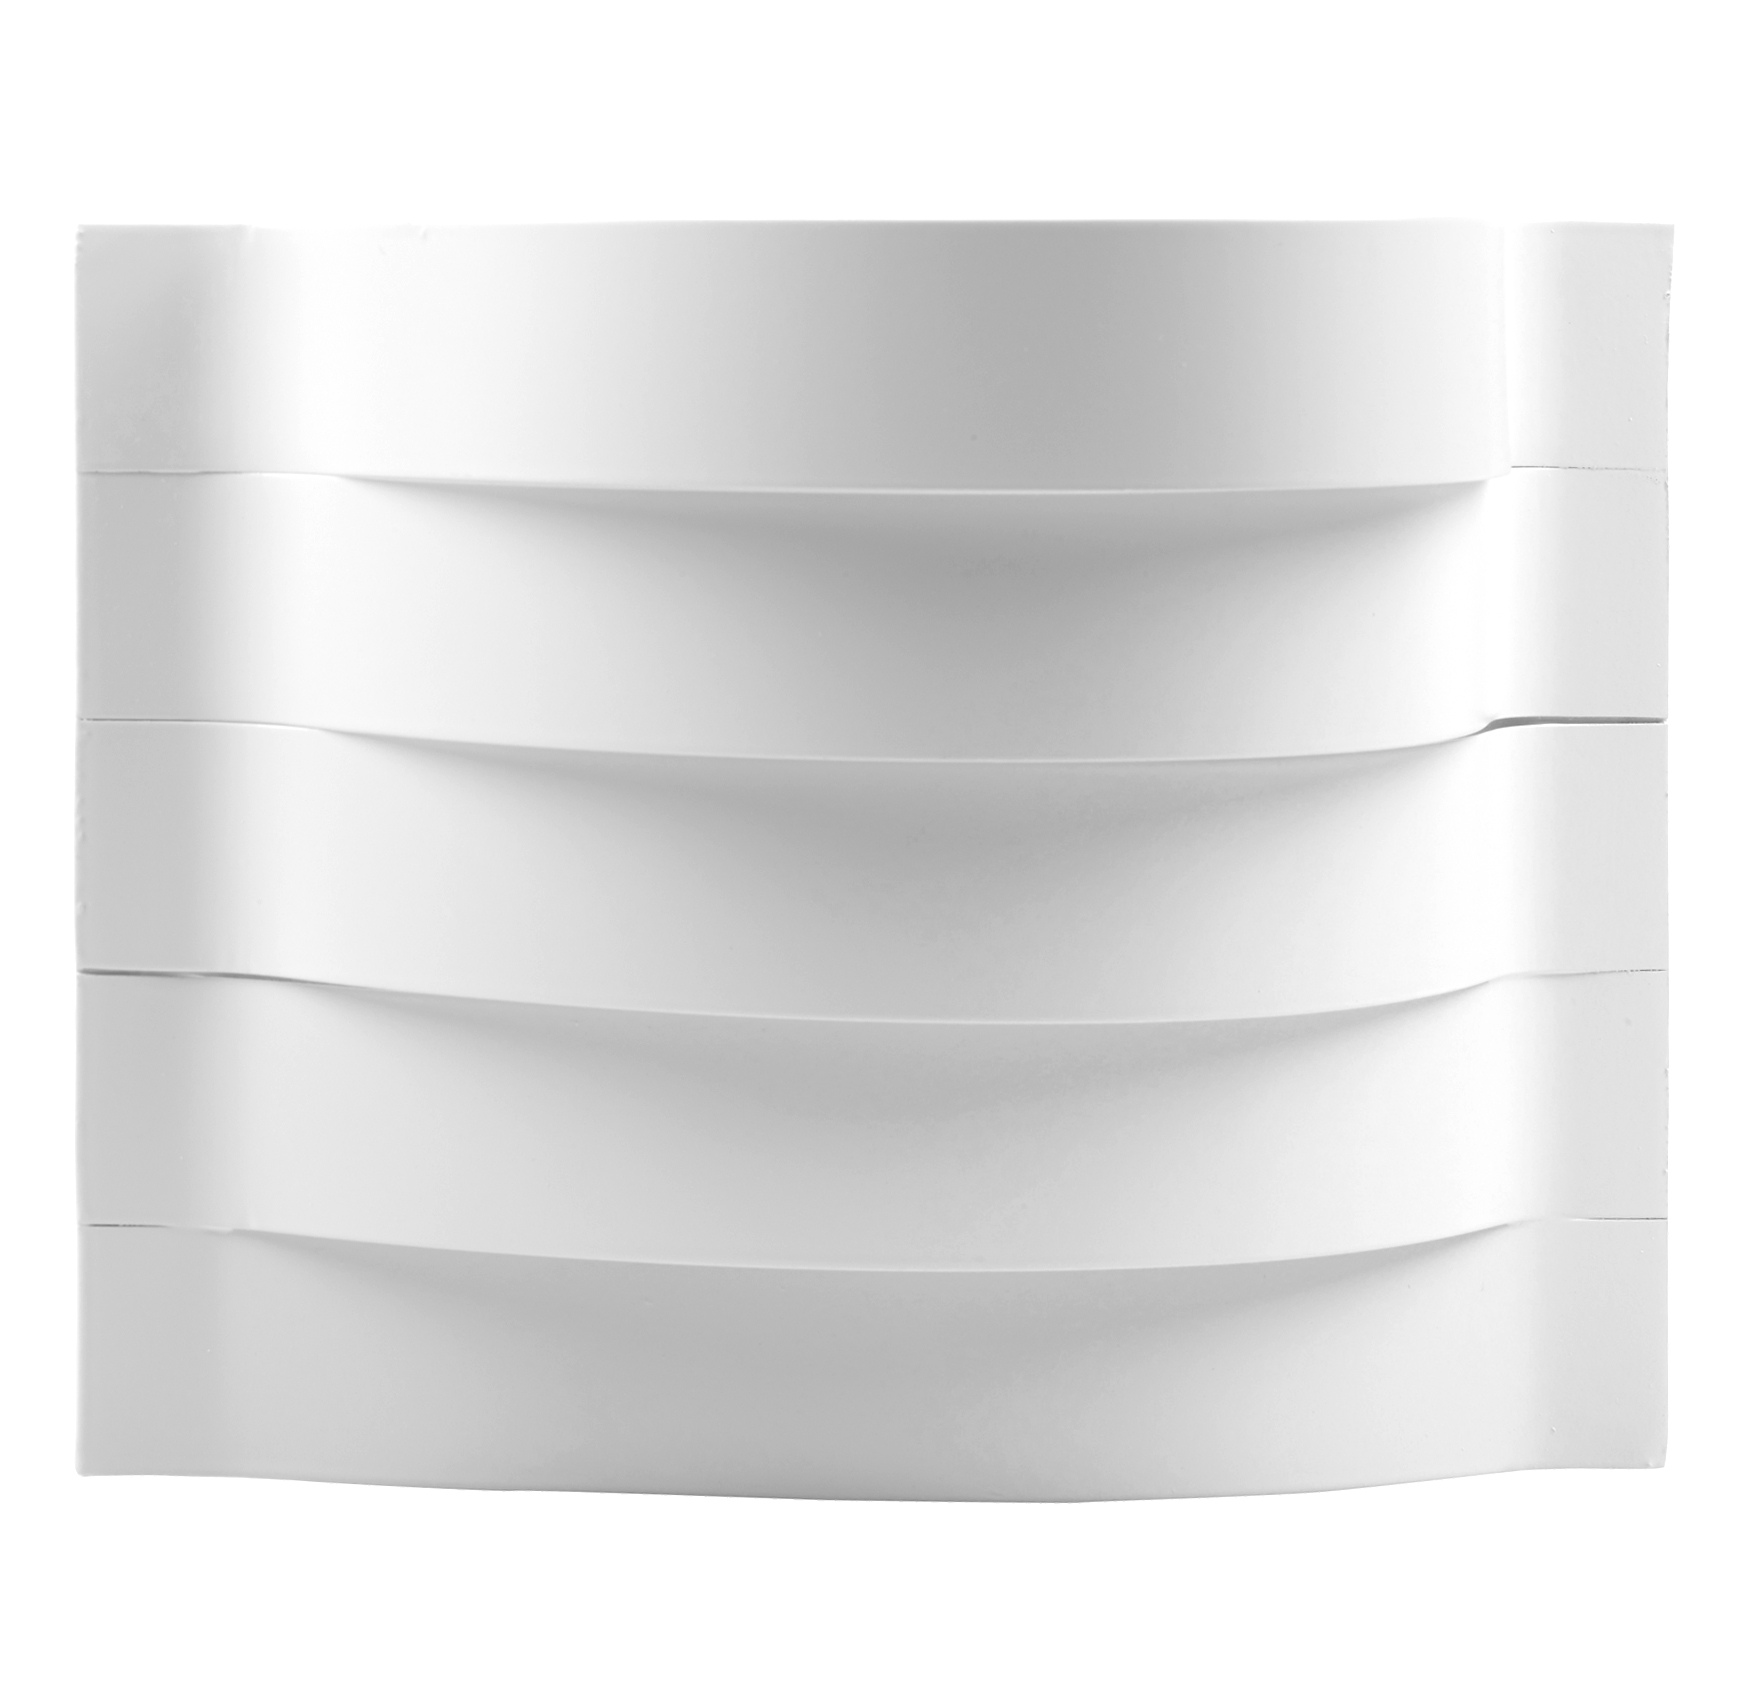 Wall Mounted Lamps Argos : White Contour Curved Wall Mounted Indoor Hallway Lamp LightingxArgos Uplighter eBay